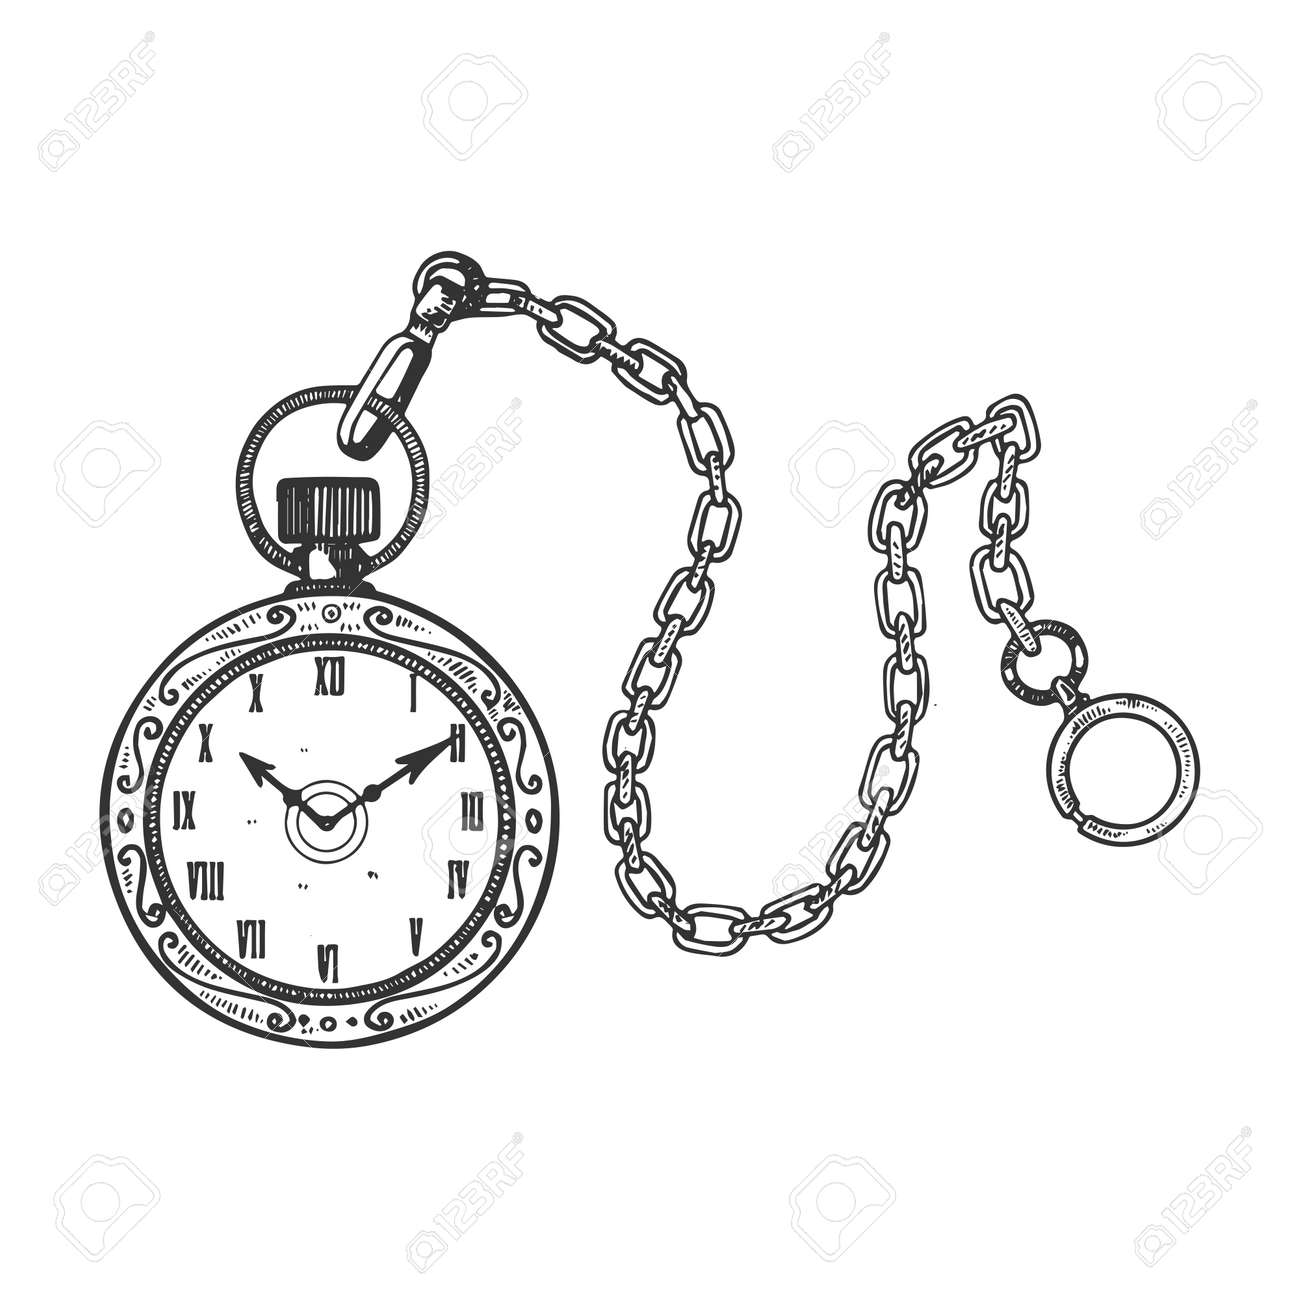 Old fashioned vintage clock watch engraving vector illustration. Scratch board style imitation. Black and white hand drawn image. - 100772077